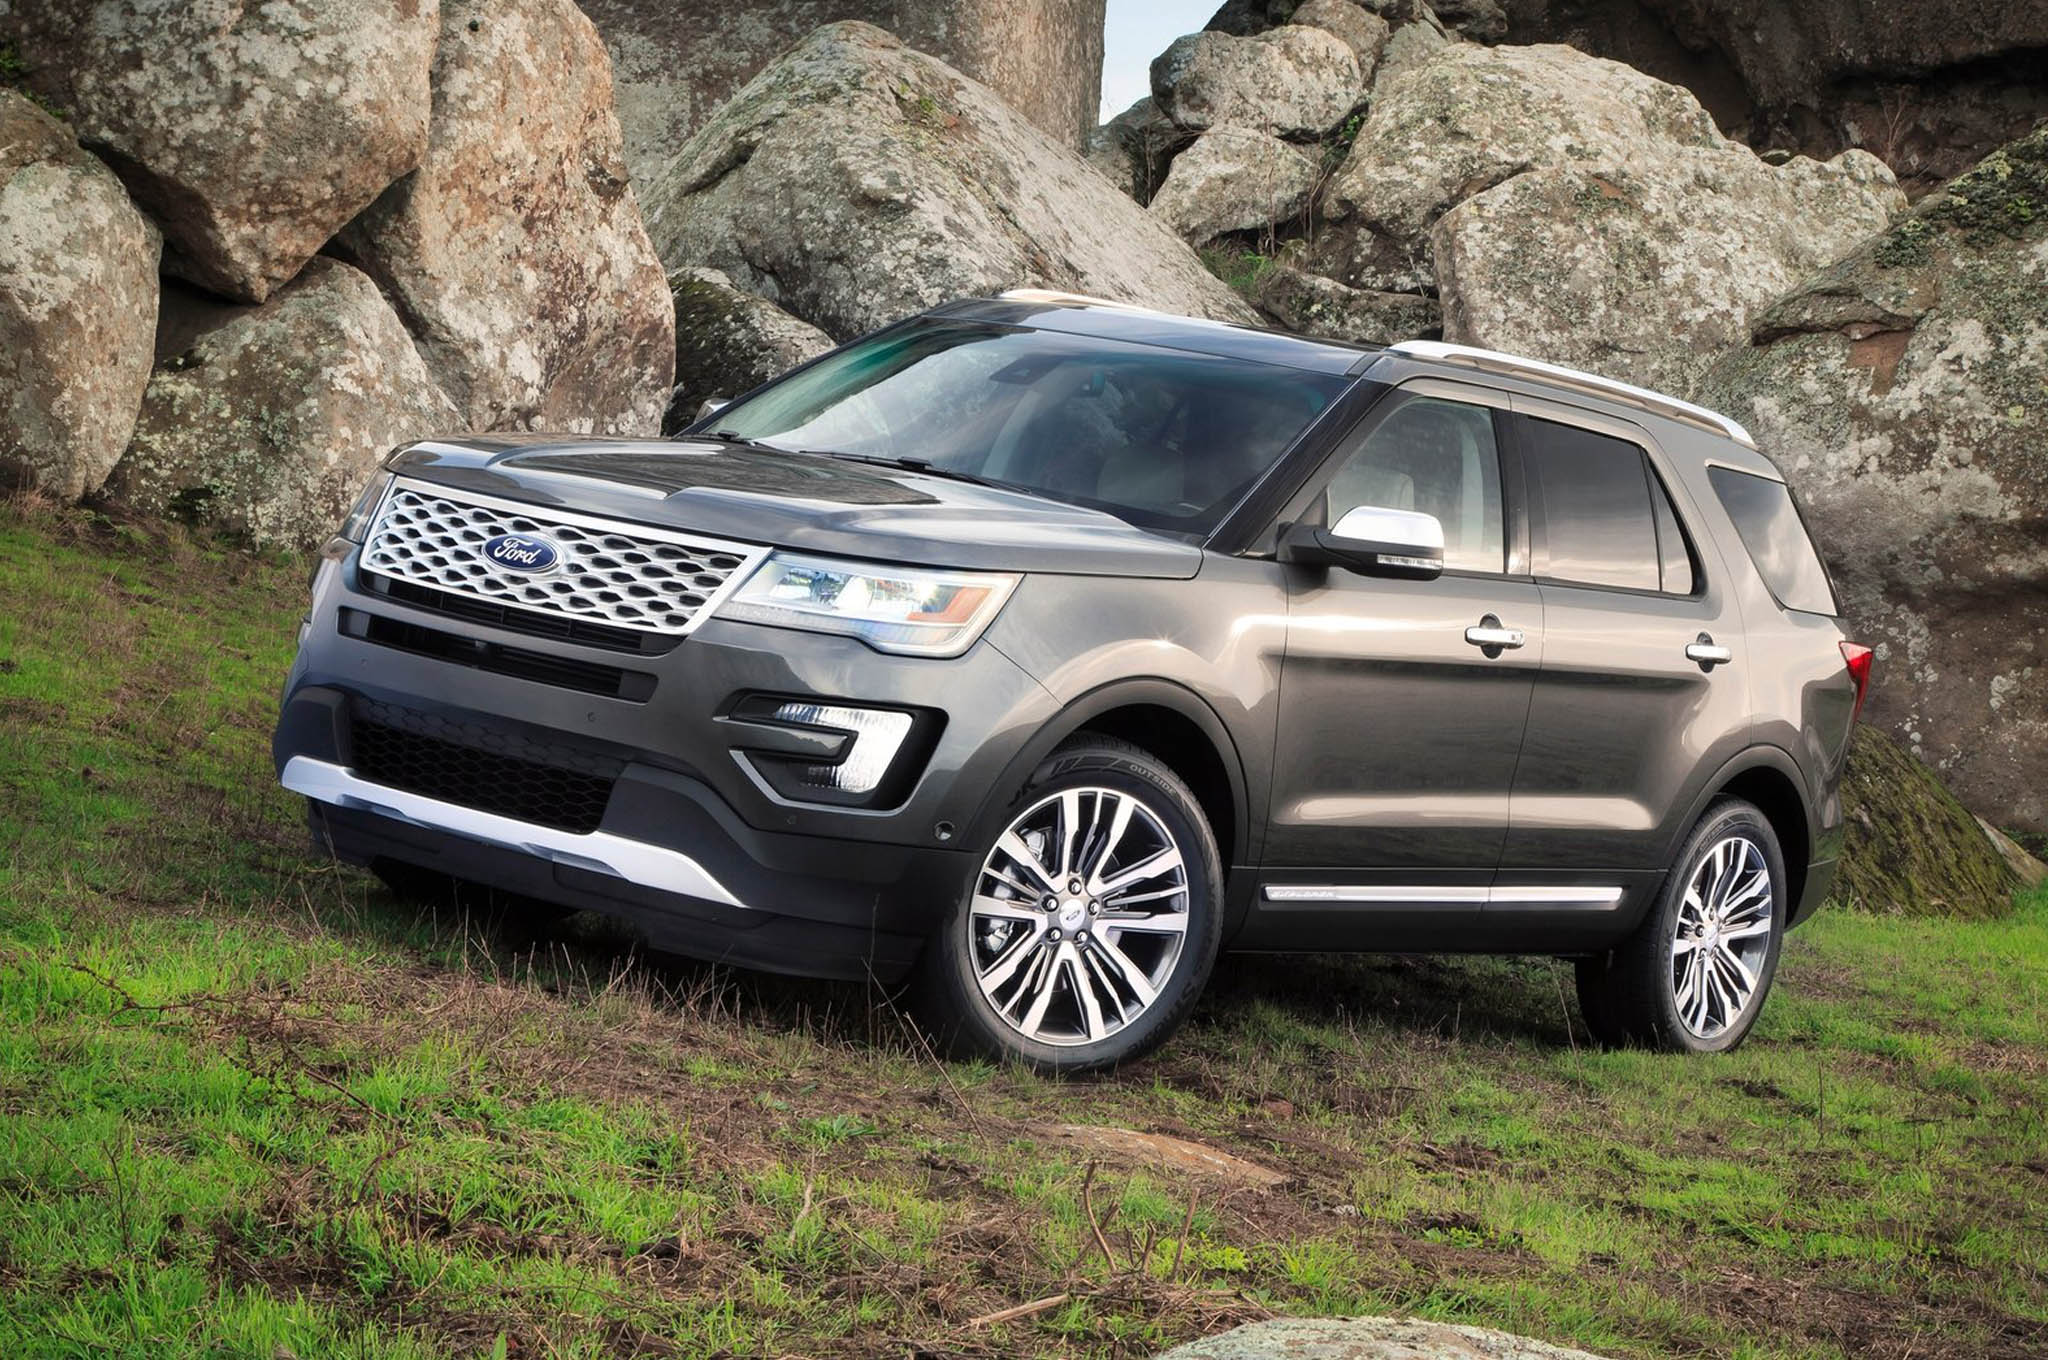 Ford expedition iii 2016 images 3